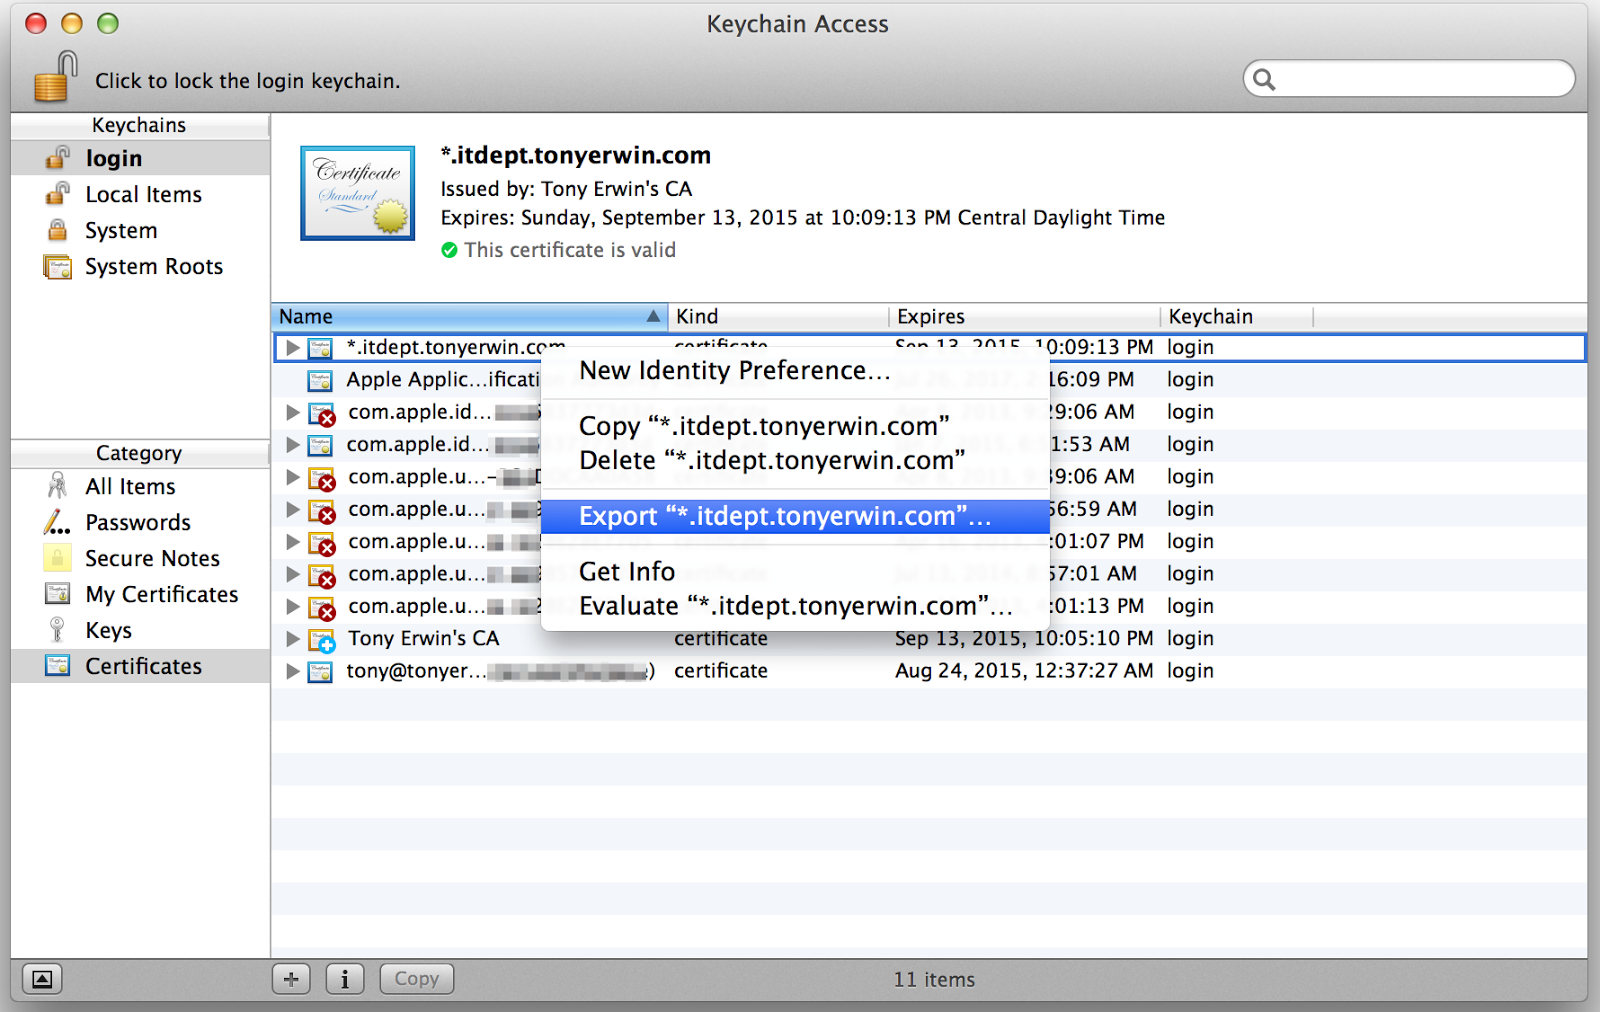 Keychain Access: Export Main Certificate